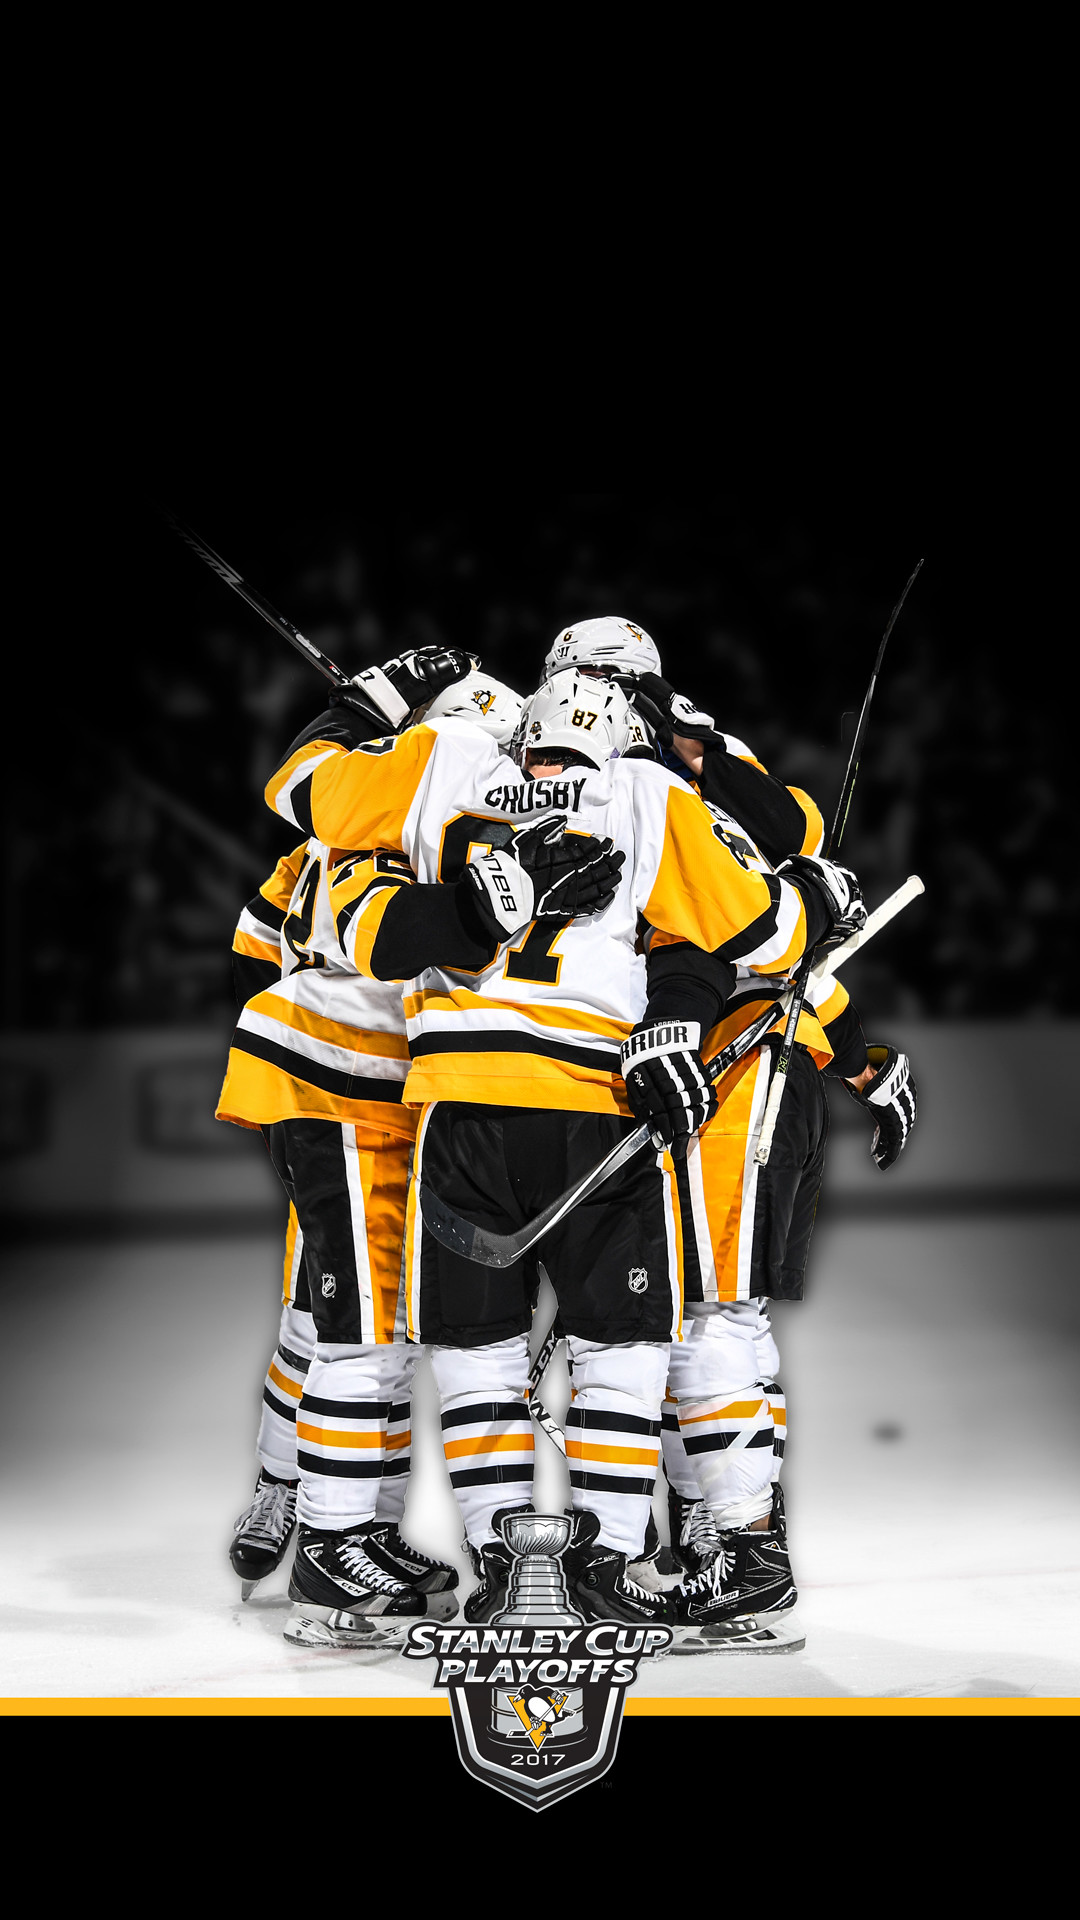 1080x1920 ICETIME WALLPAPERS Download 4 Pittsburgh Penguins